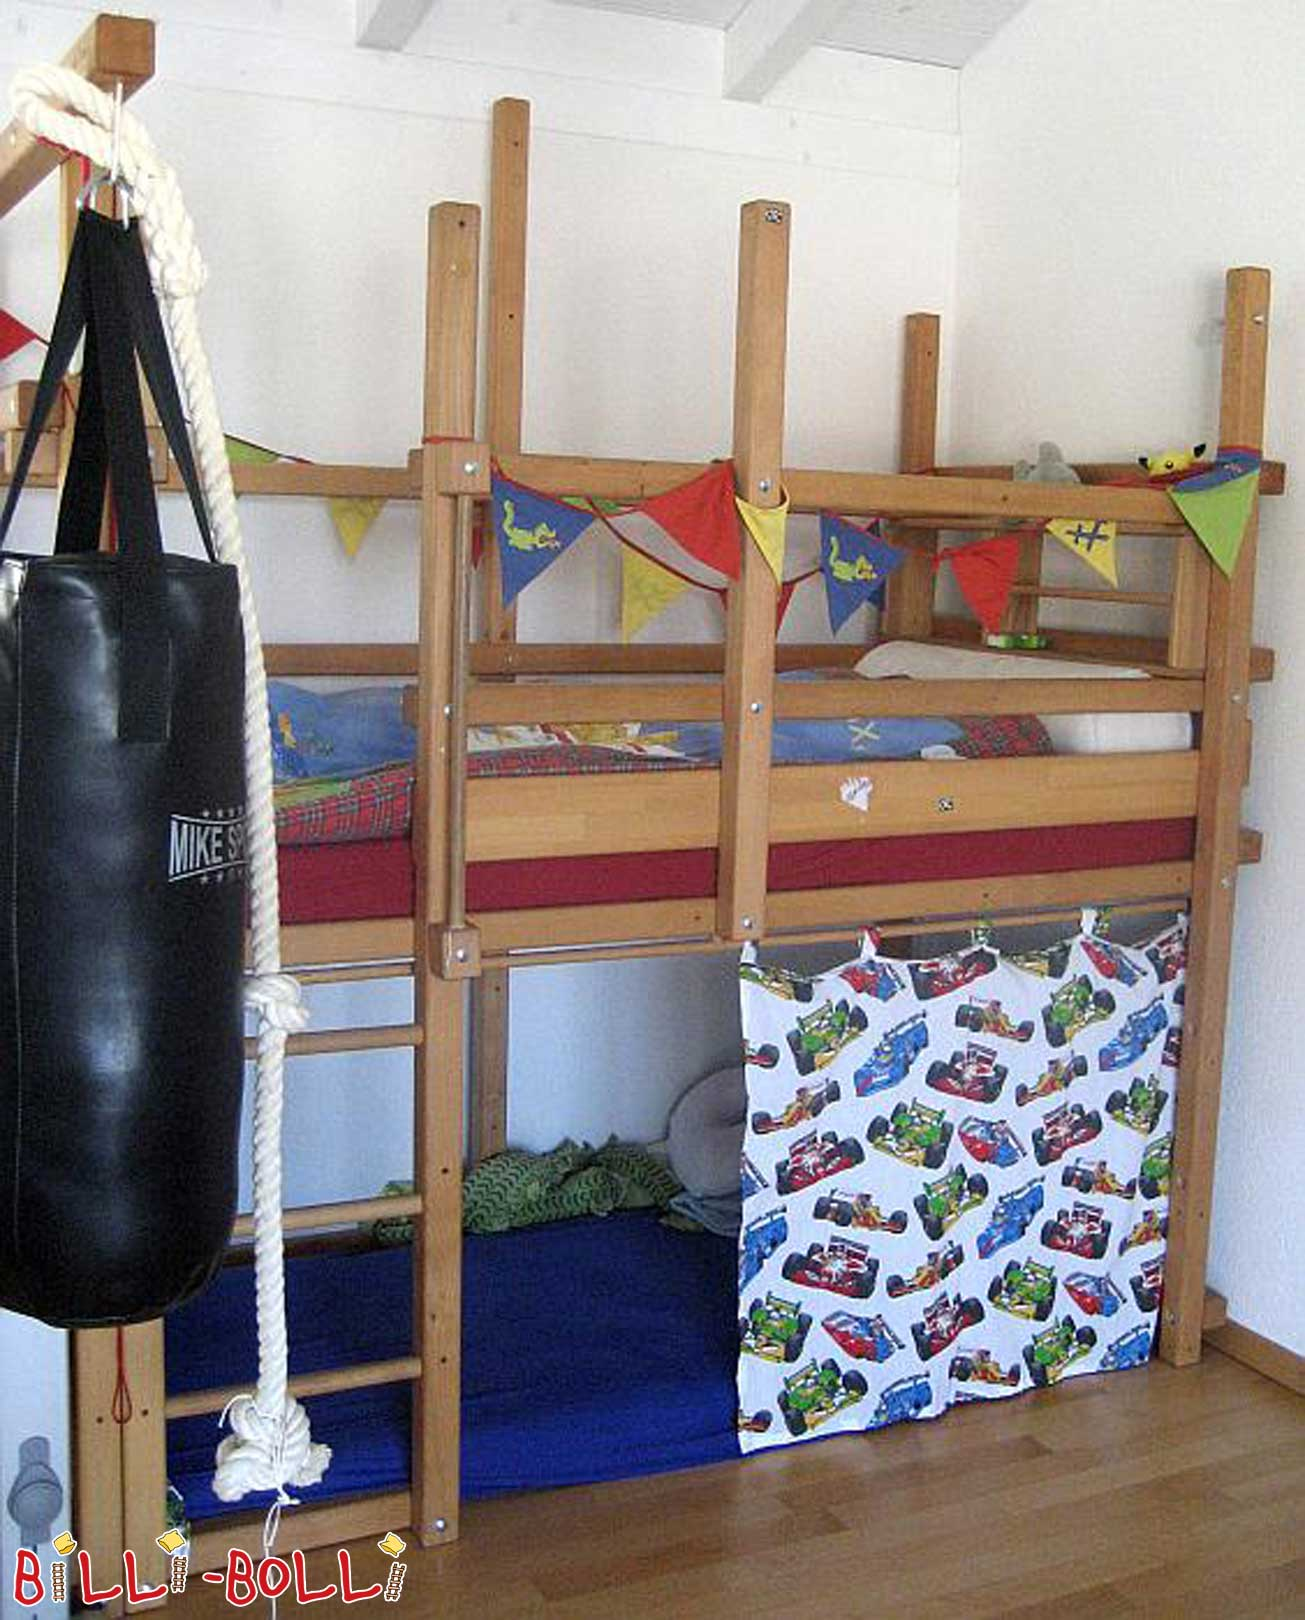 secondhand seite 135 billi bolli kinderm bel. Black Bedroom Furniture Sets. Home Design Ideas